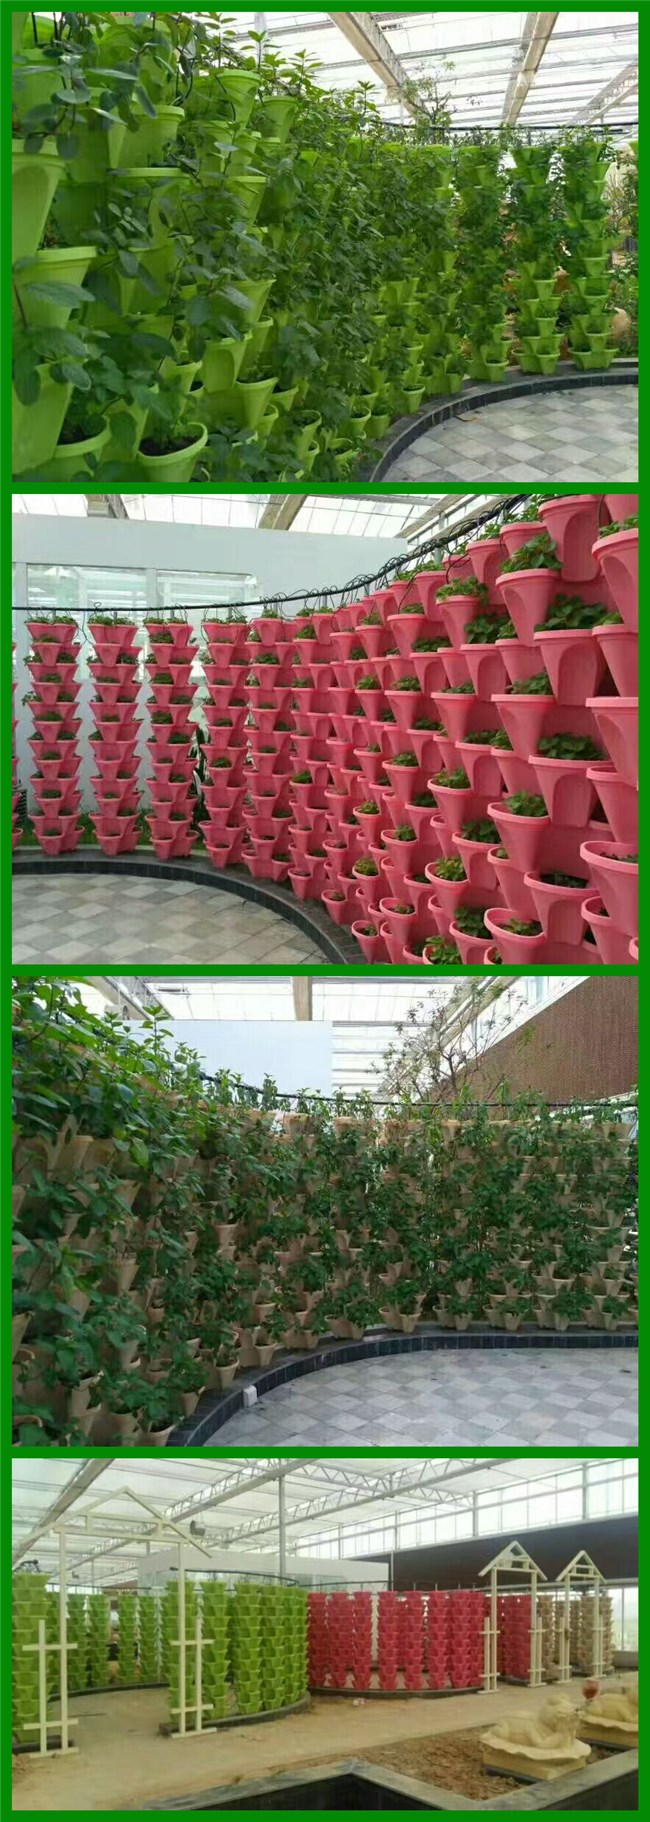 High Quality Dutch Bucket Bato For Greenhouse hydroponic growing system